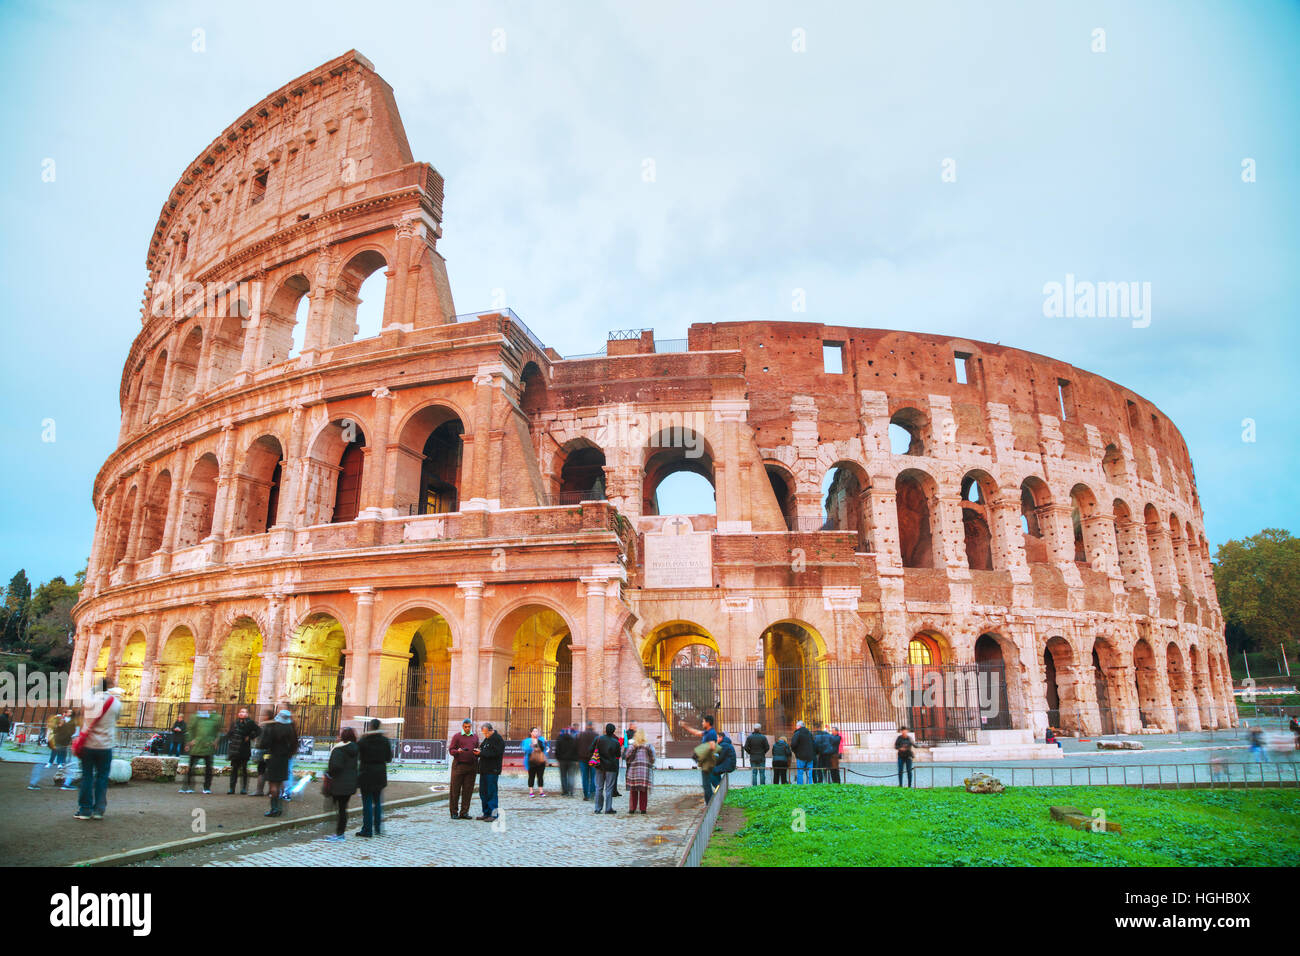 ROME - NOVEMBER 08: The Colosseum or Flavian Amphitheatre with people at night on November 8, 2016 in Rome, Italy. - Stock Image